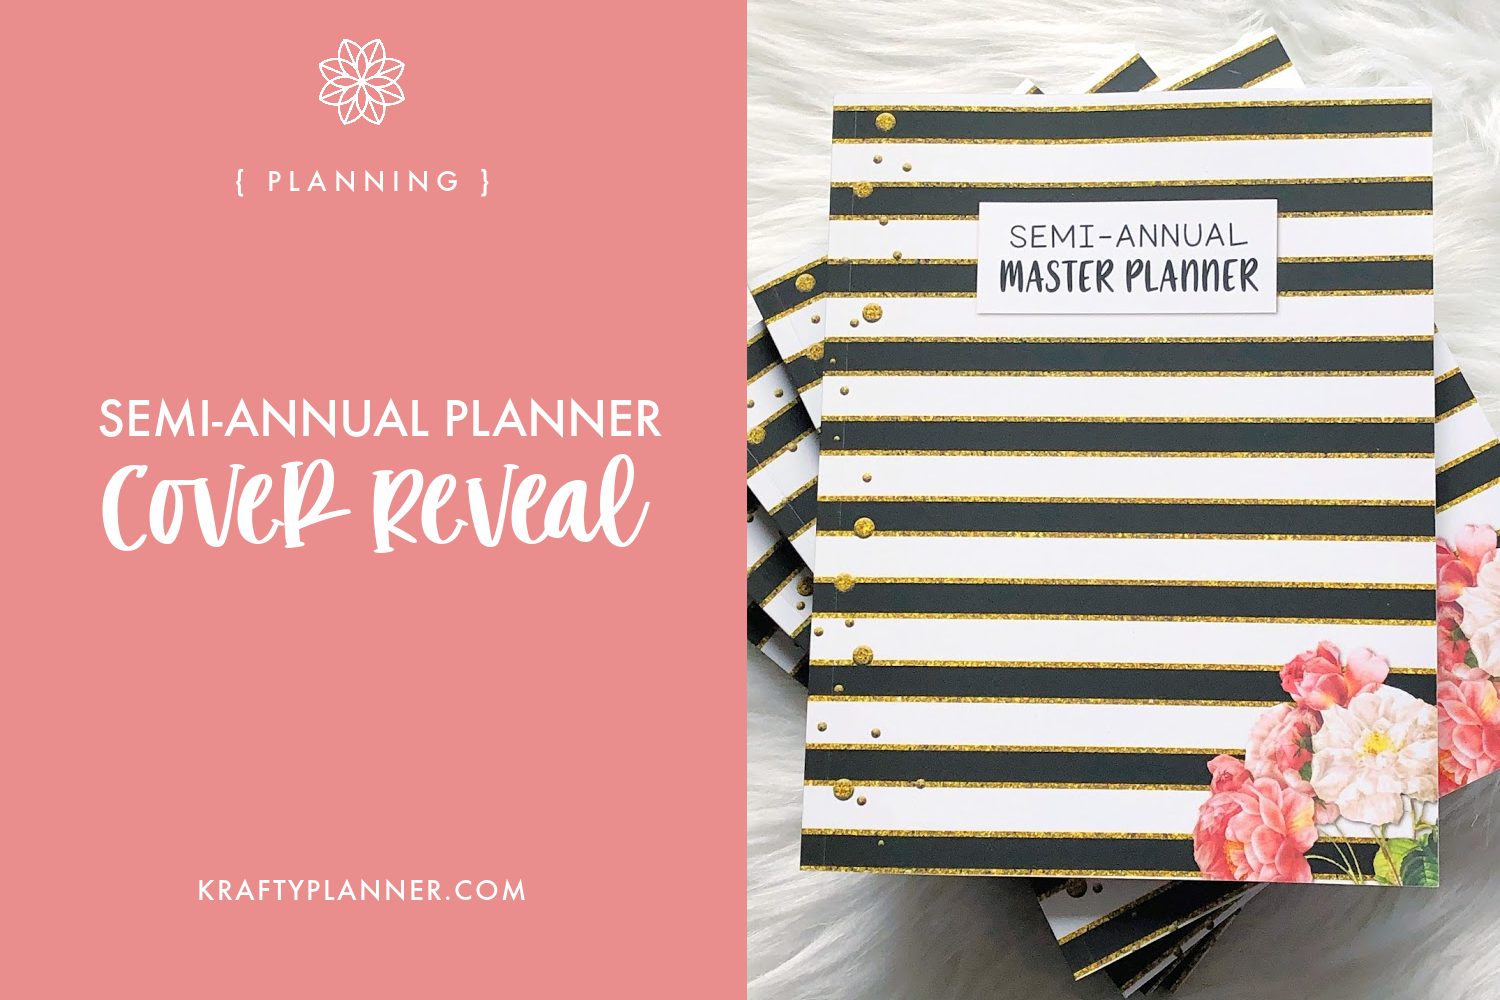 Semi Annual Planner Cover Reveal.png